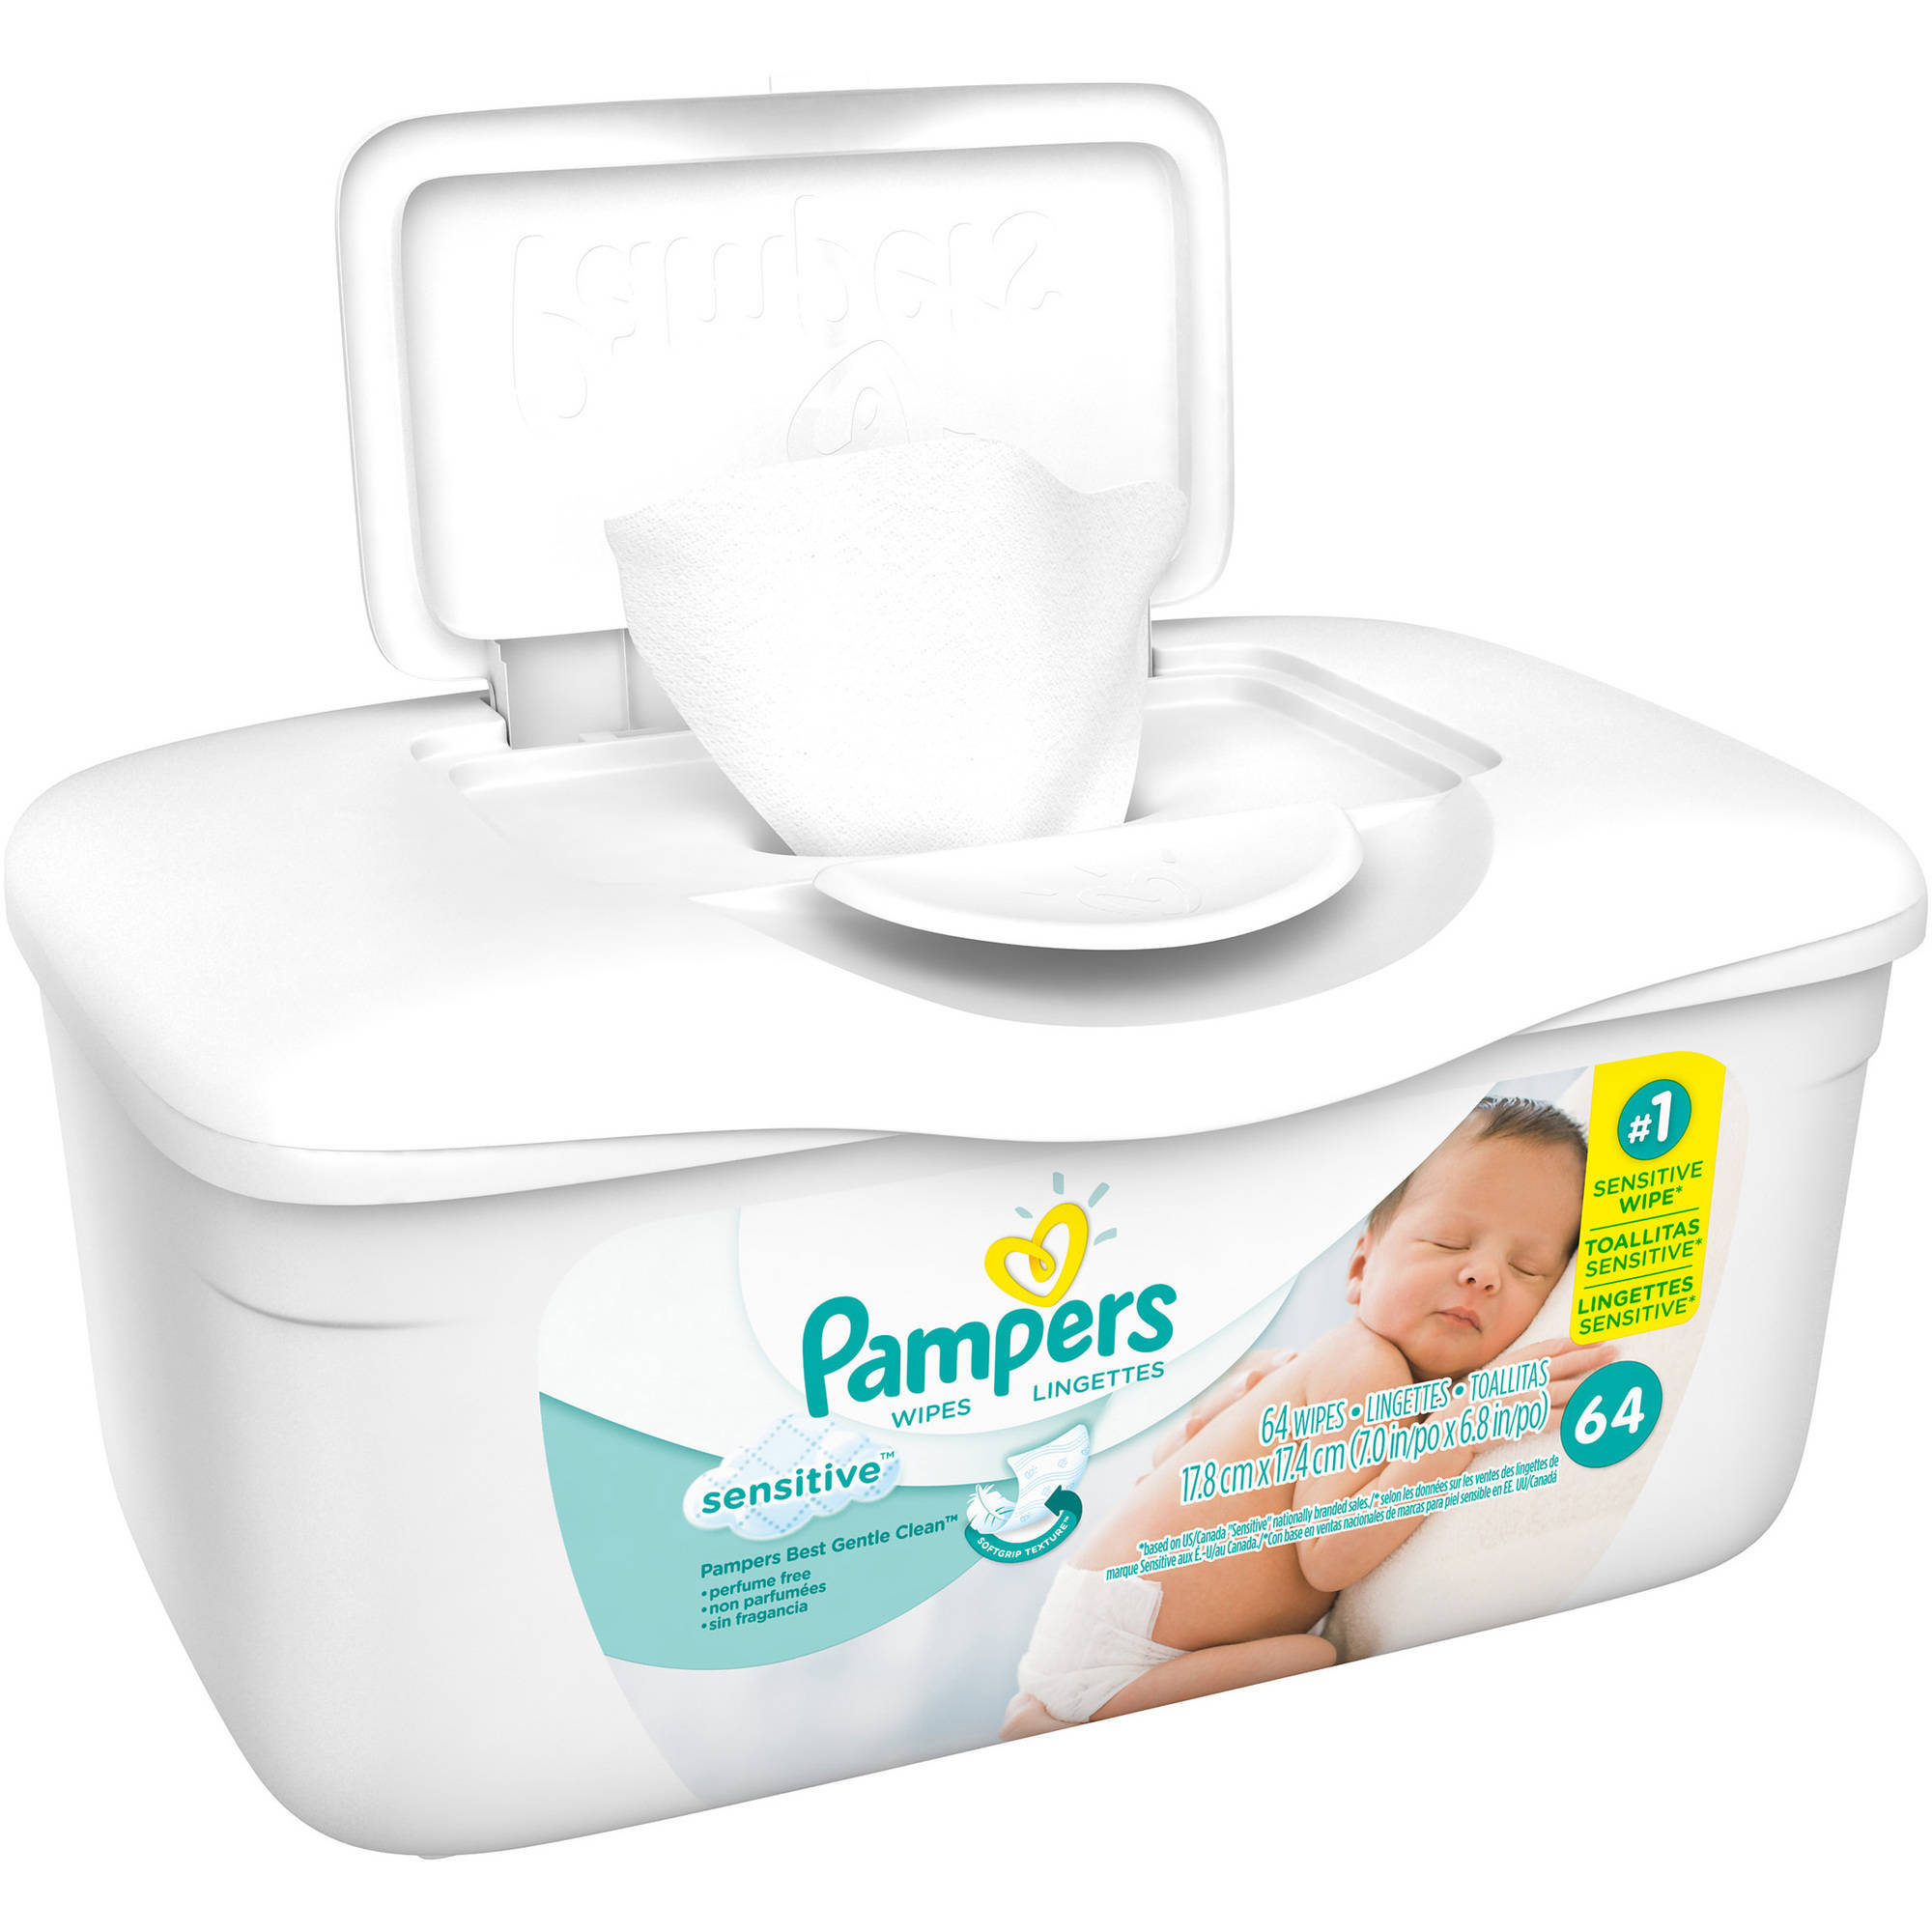 Pampers Sensitive Baby Wipes, 64 sheets